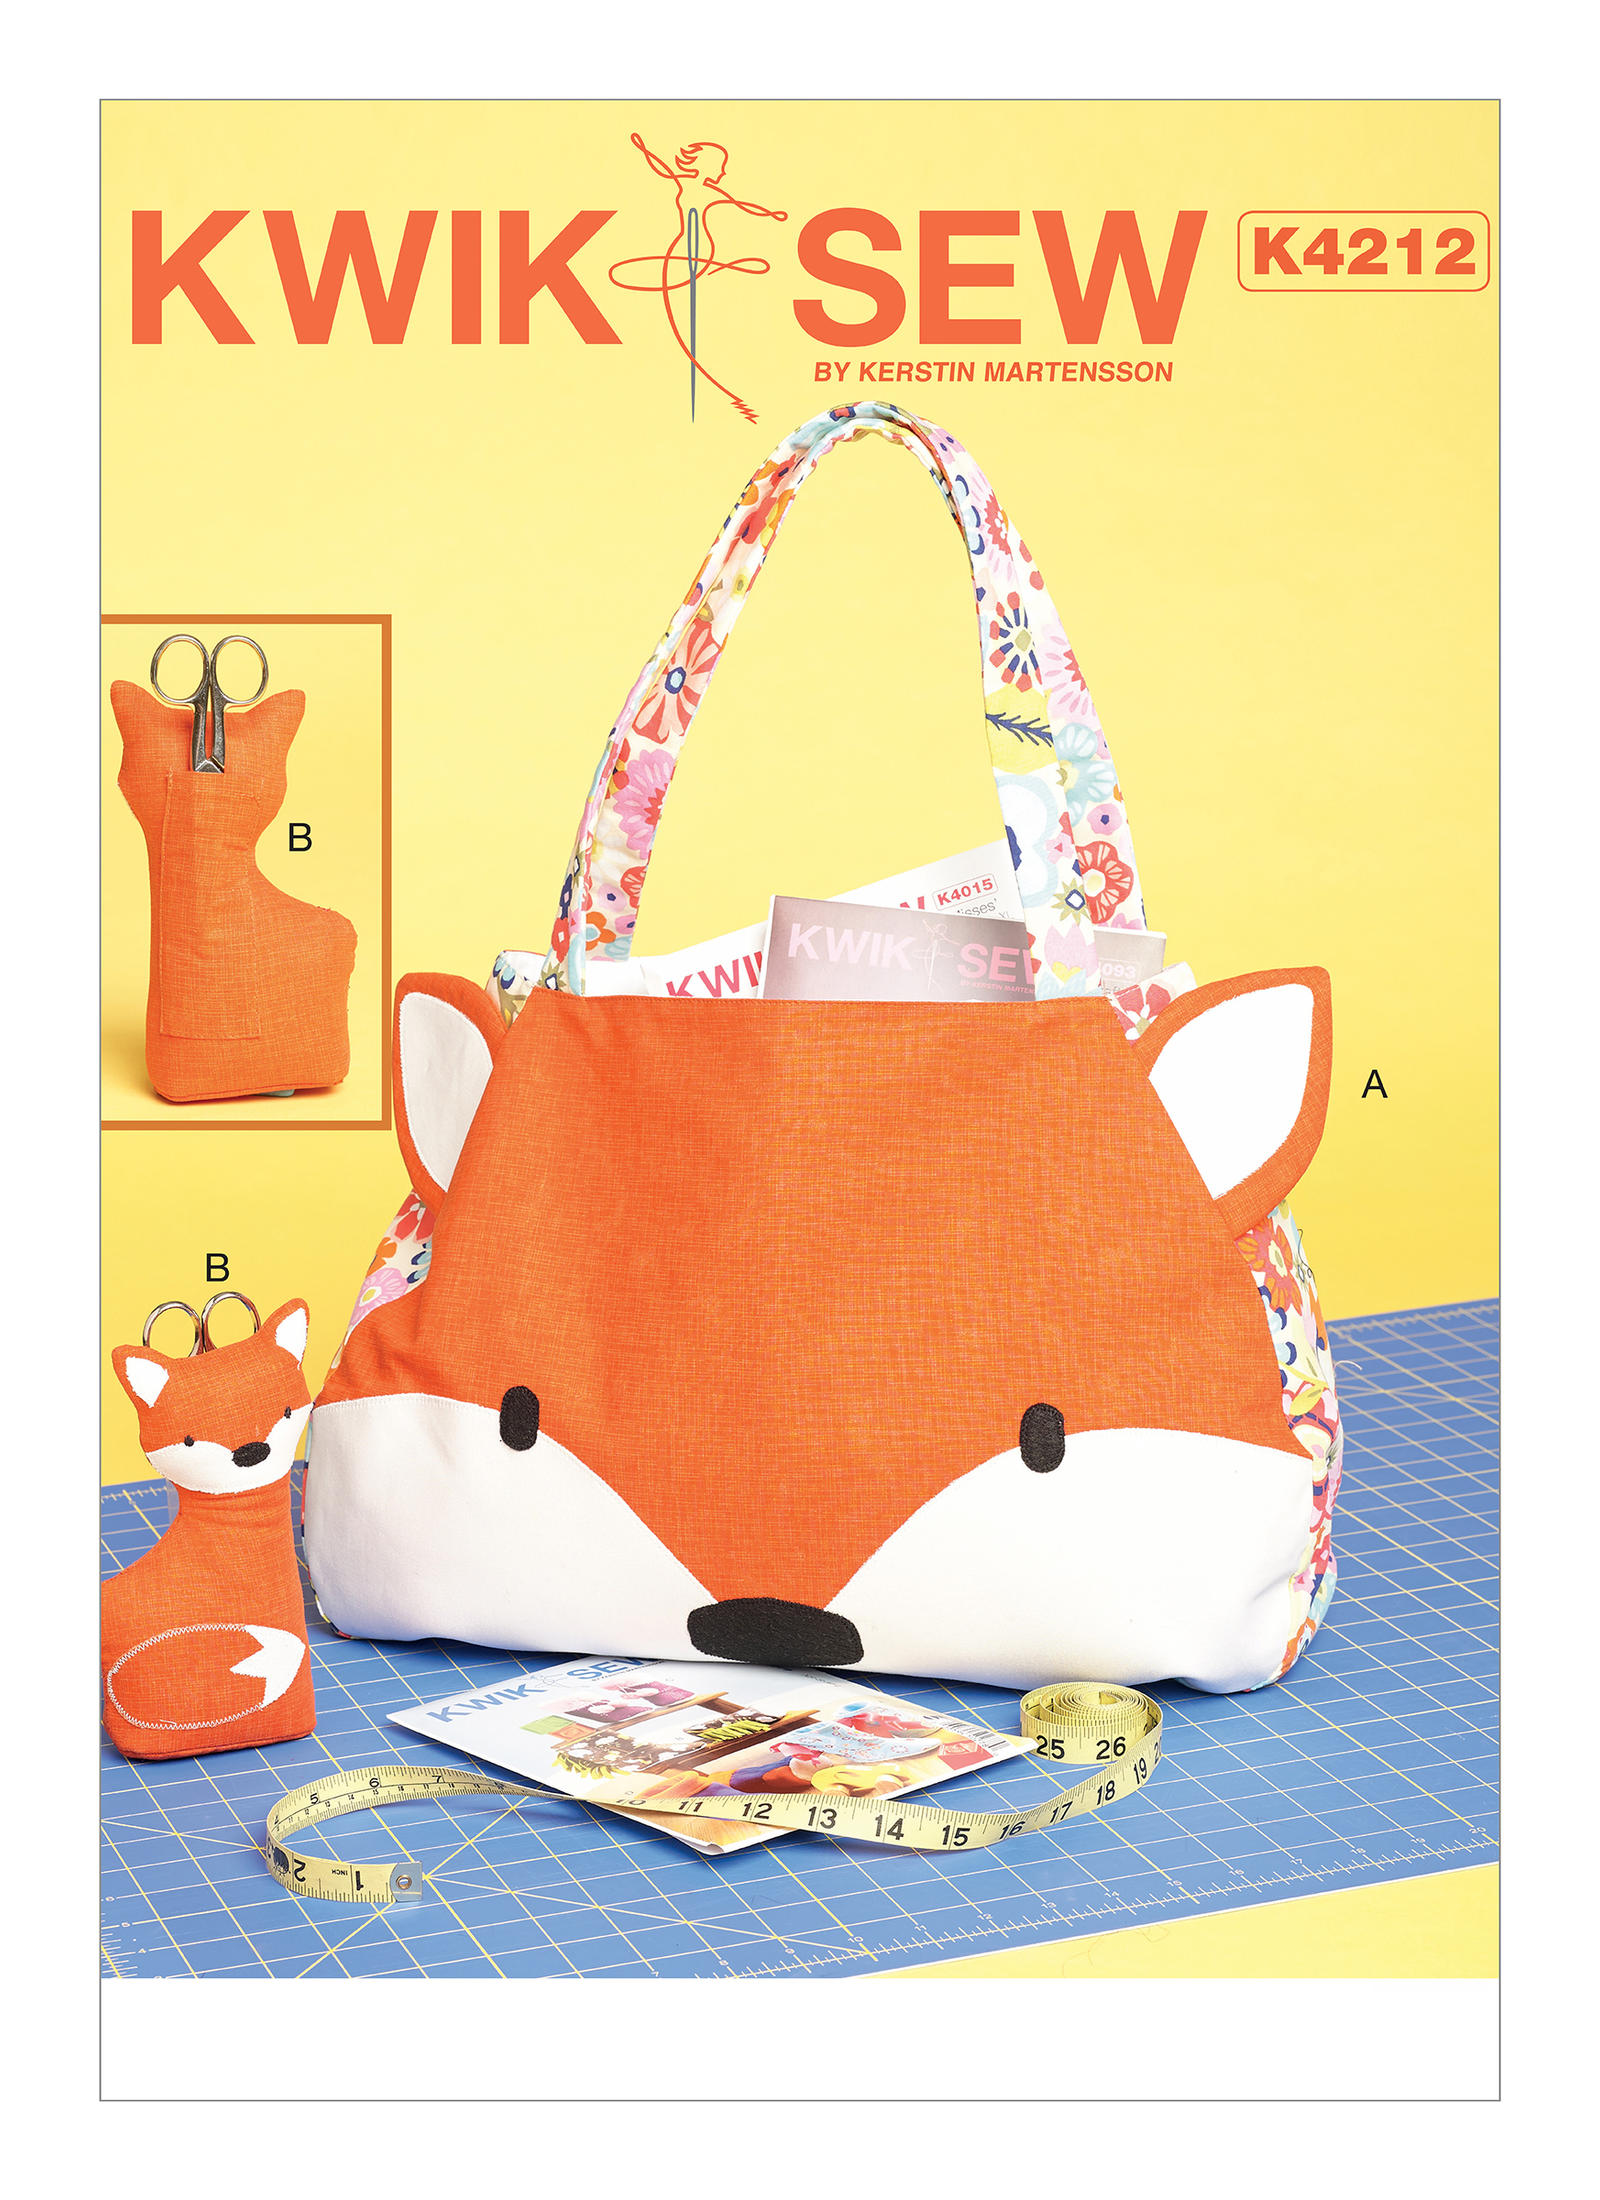 Kwik sew 4212 tote bag and scissor holder with pockets and appliqu prevnext tote bag a has appliqu publicscrutiny Image collections